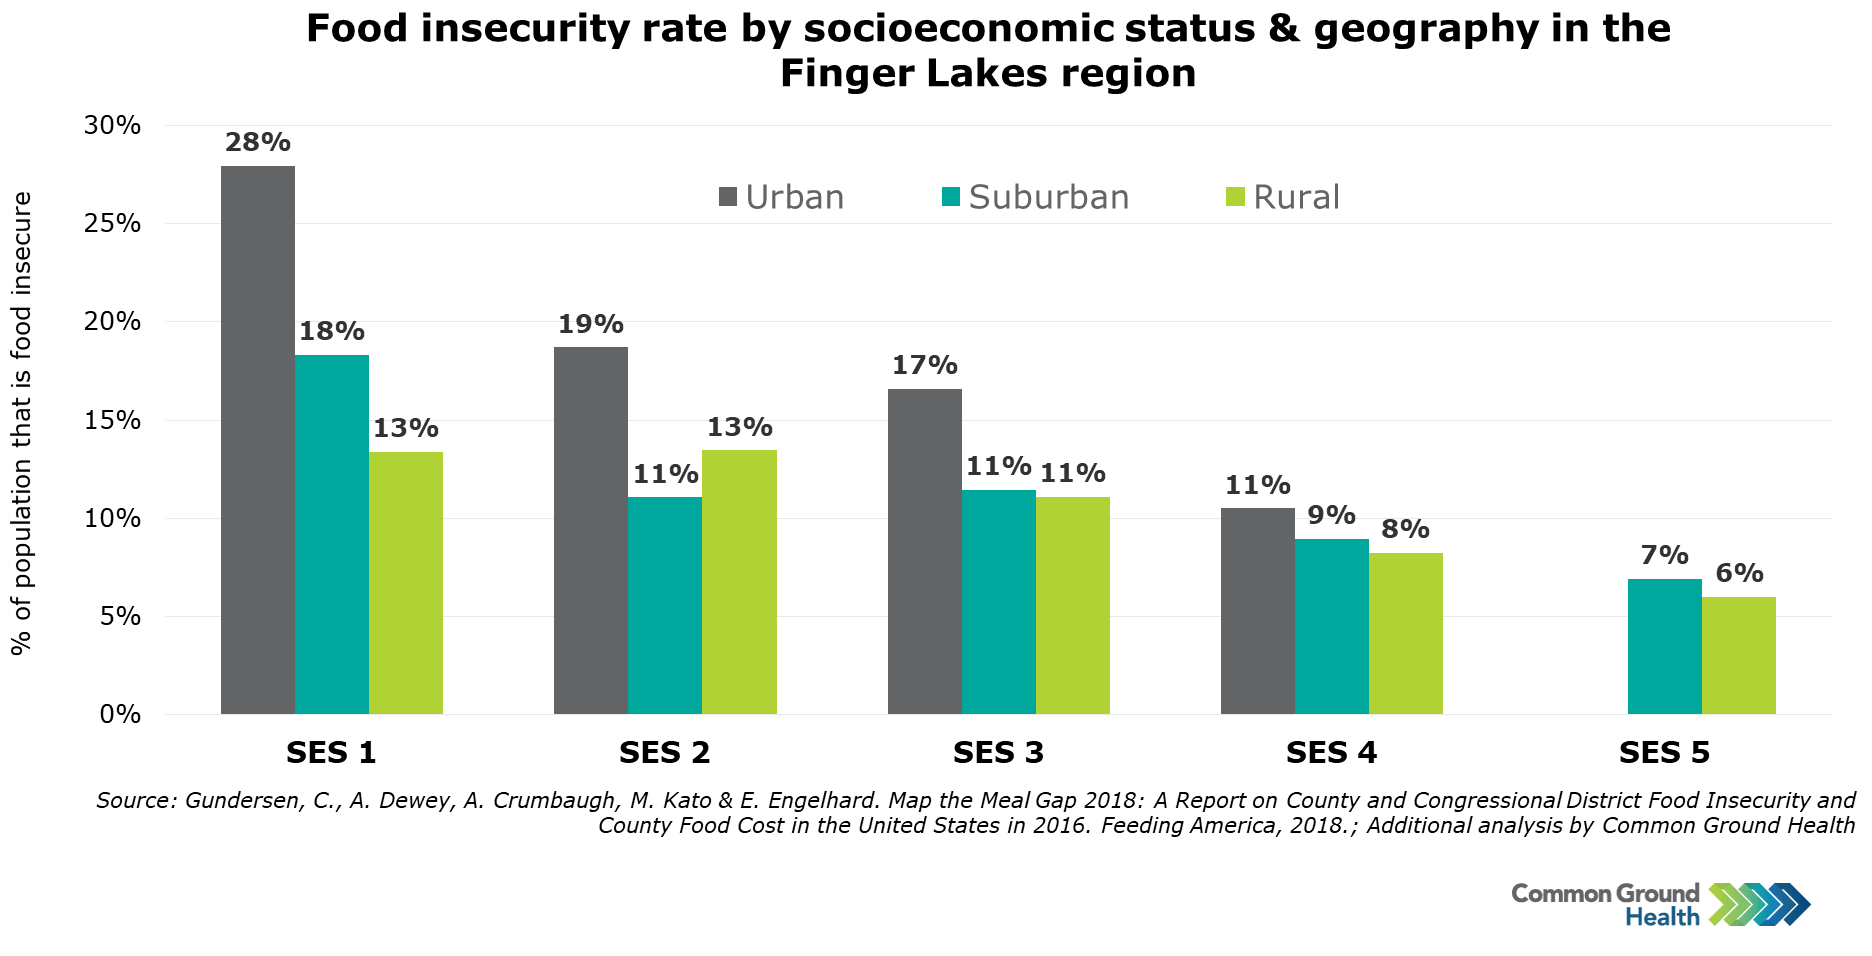 Food Insecurity by Socioeconomic Status & Geography